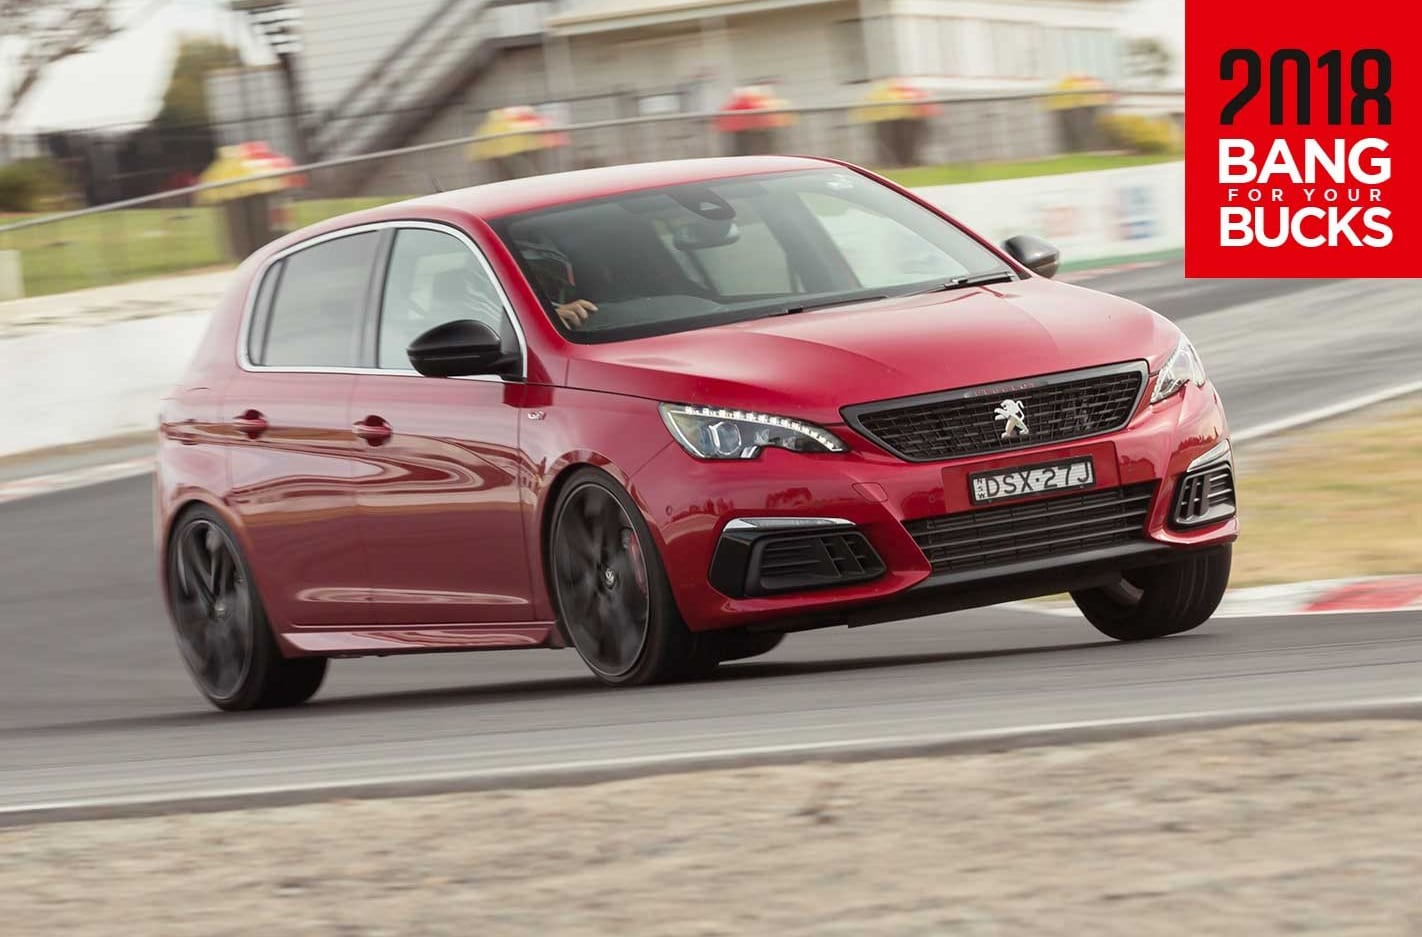 2018 Peugeot 308 GTi 270 track review